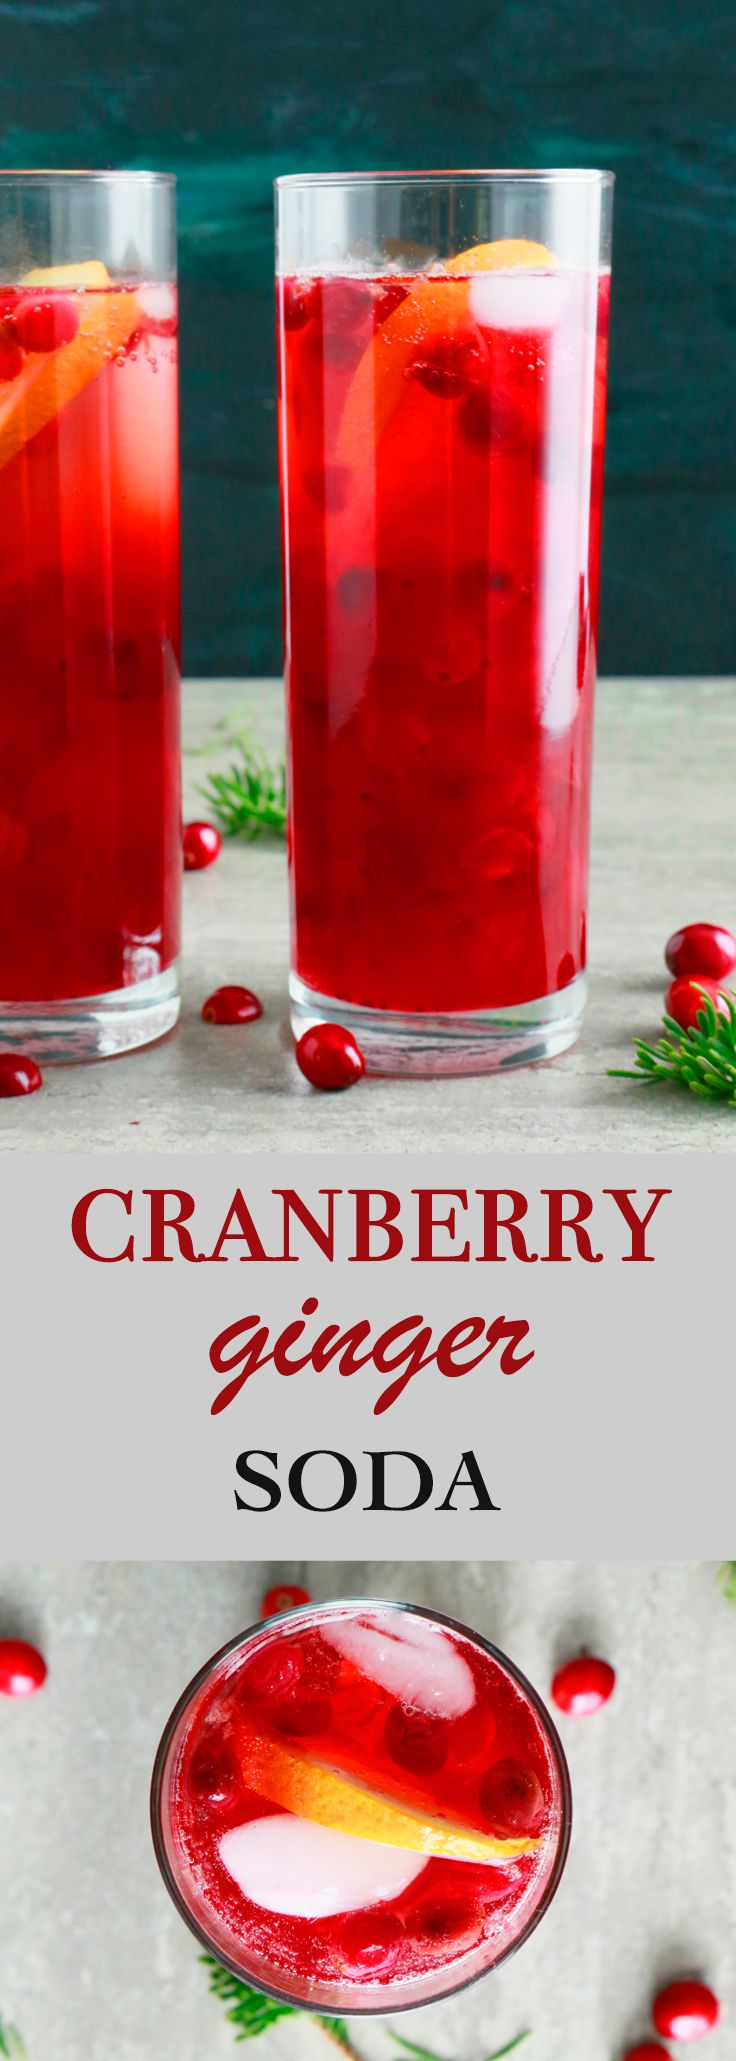 holiday drinks | christmas drink recipes | kid friendly drinks ...